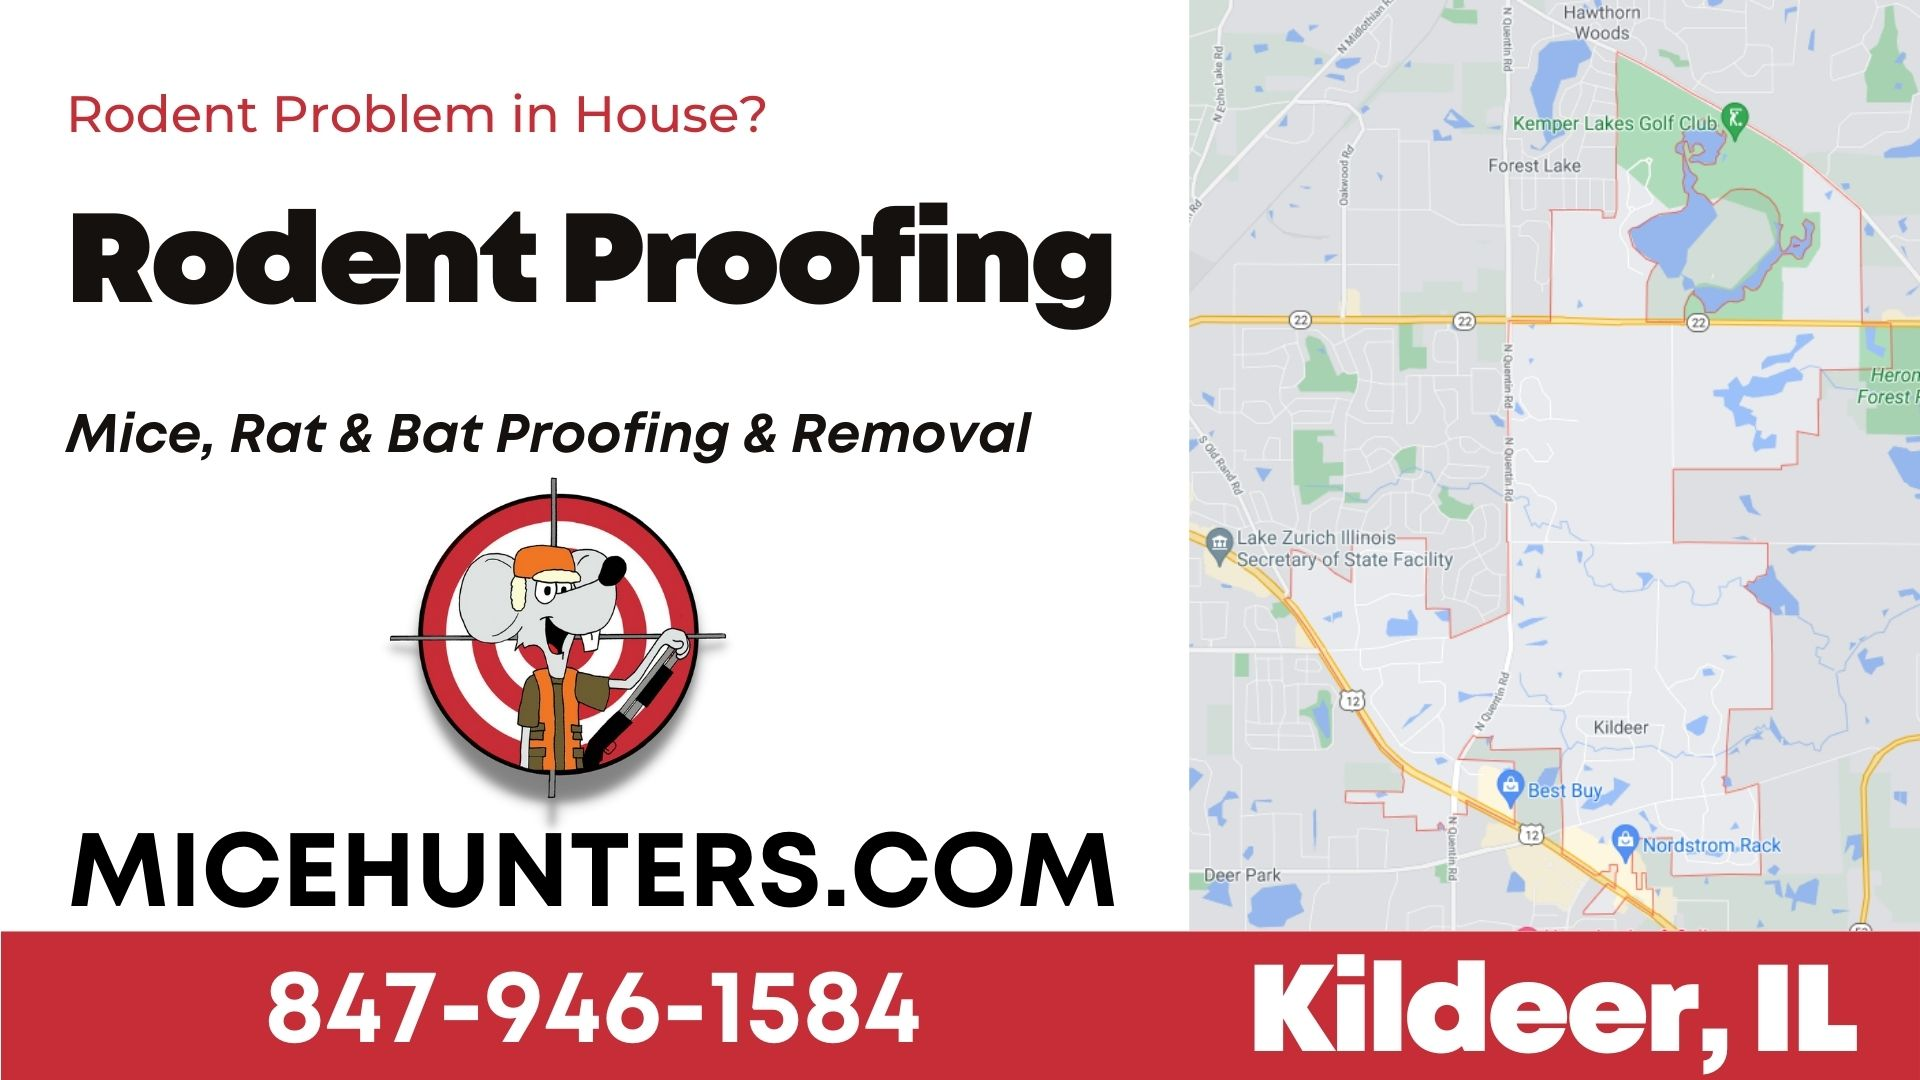 Kildeer,IL Rodent and Mice Proofing Exterminator